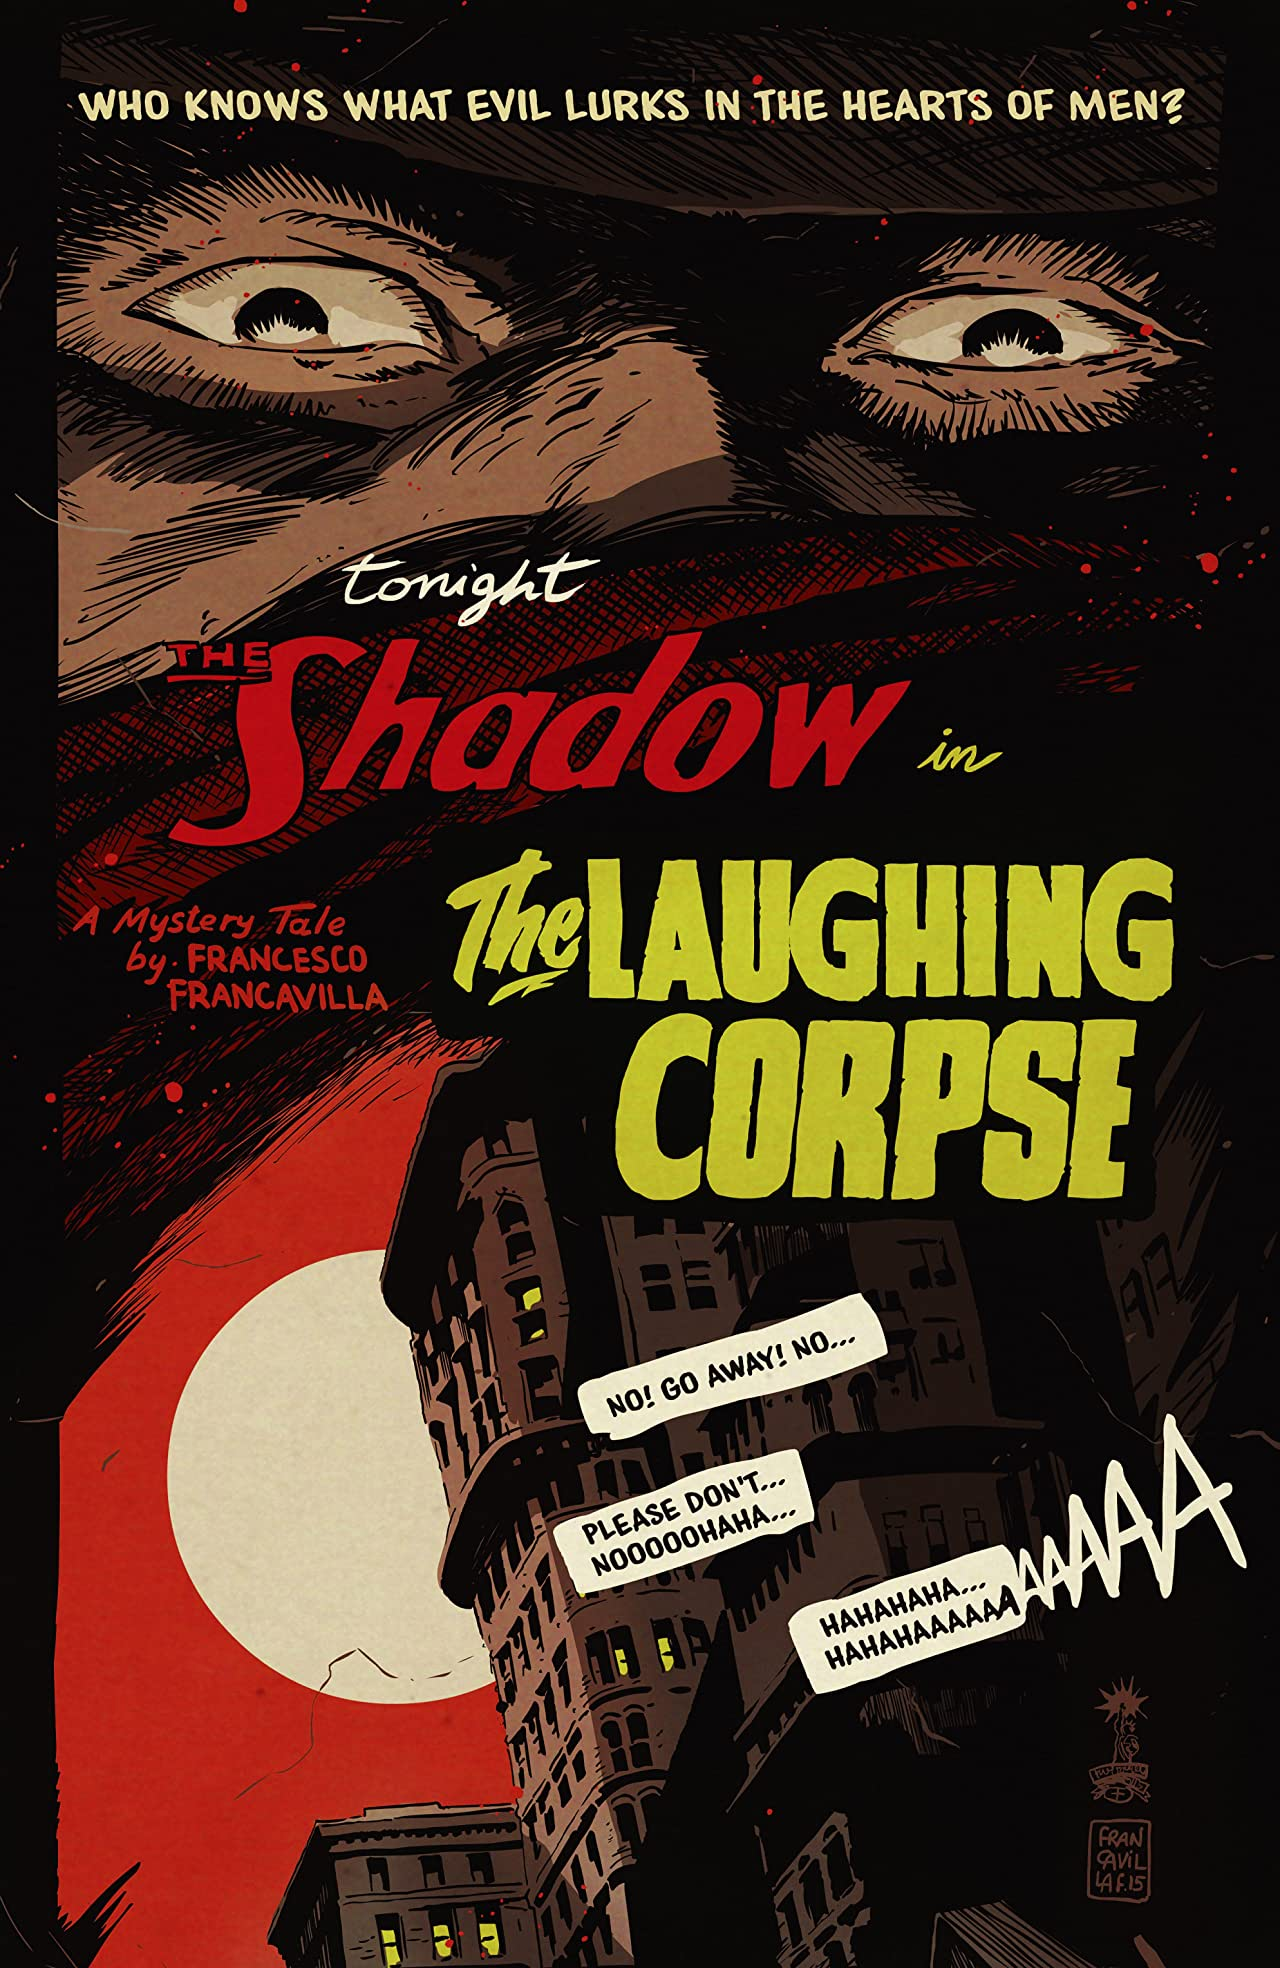 The Shadow #100: Digital Exclusive Edition